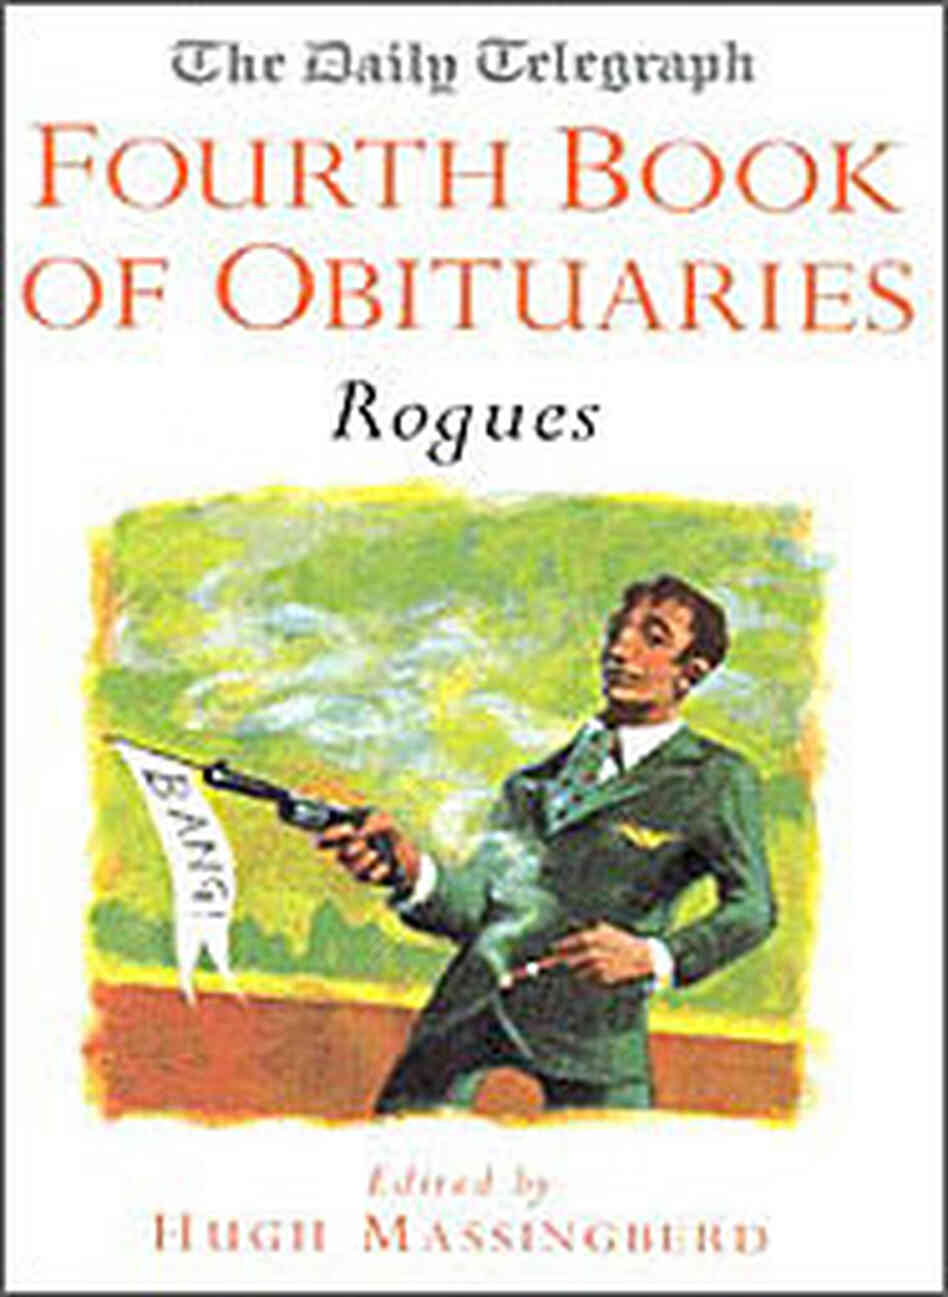 Fourth Book of Obituaries